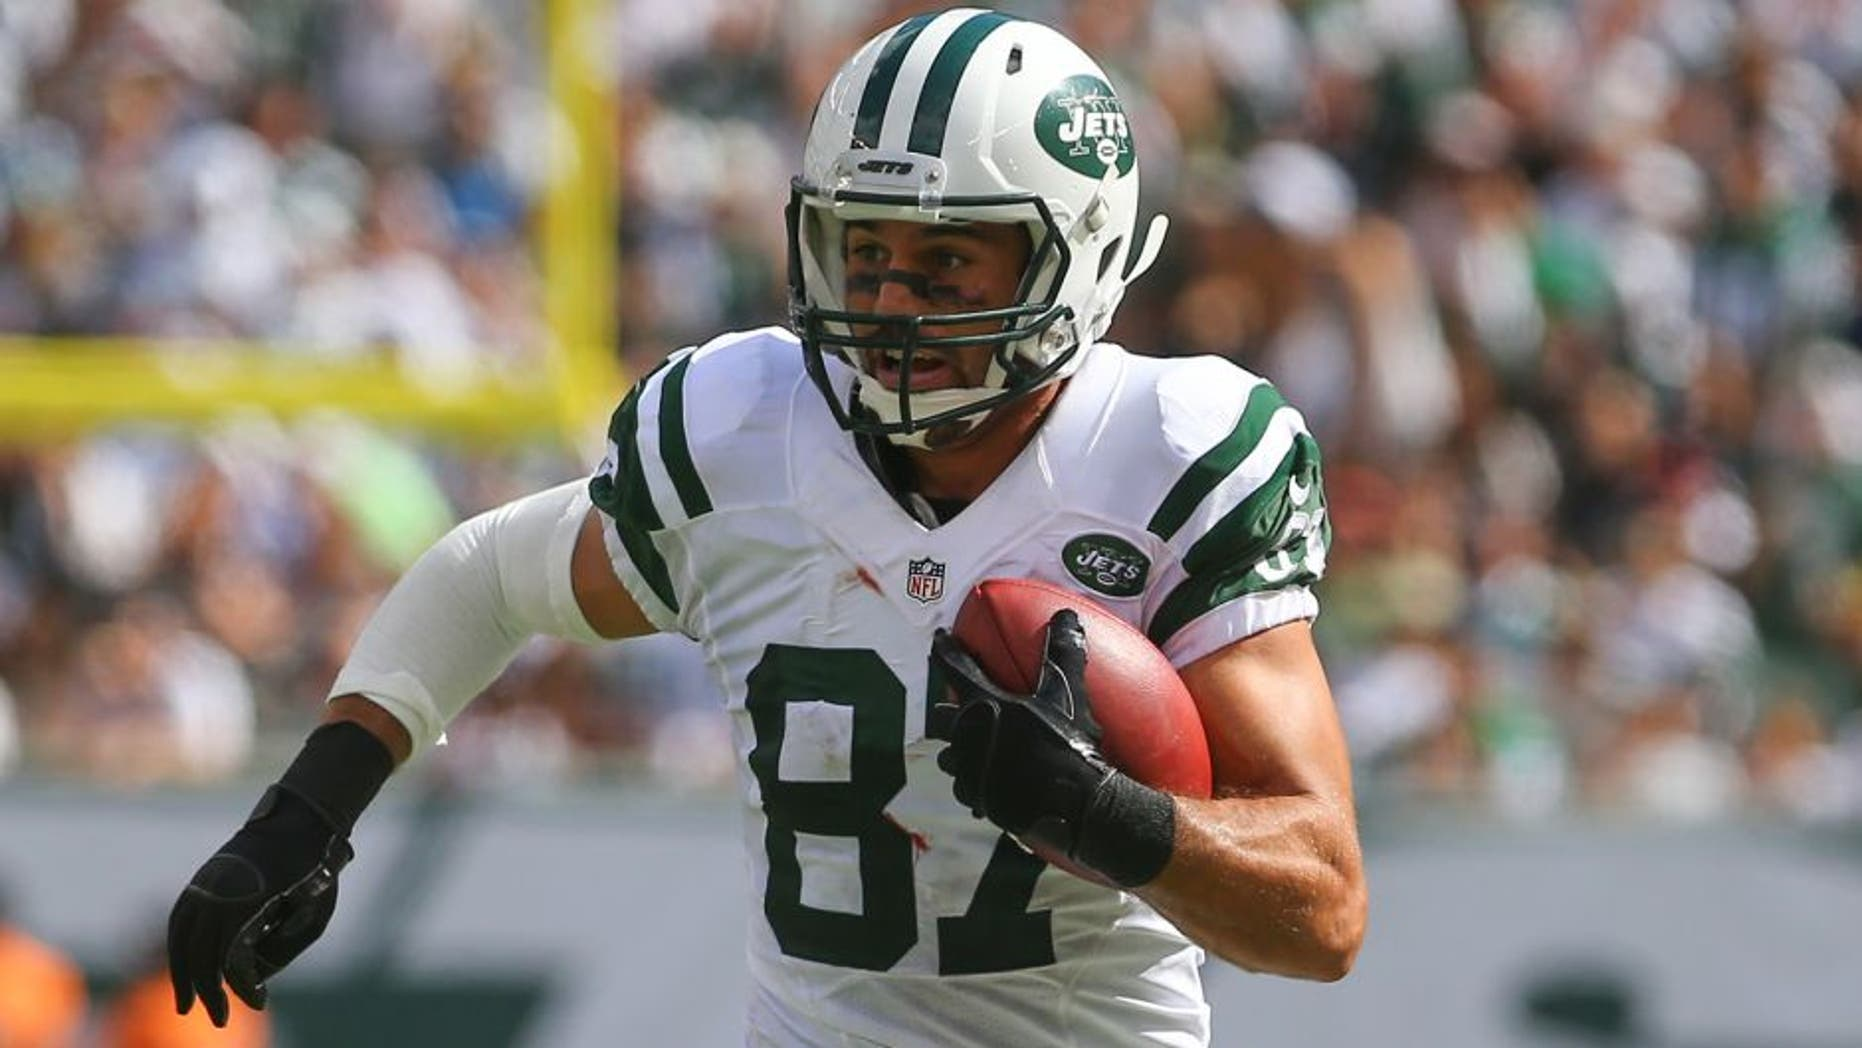 EAST RUTHERFORD, NJ - SEPTEMBER 7: Eric Decker (87) of the New York Jets runs with the ball during their game against the Oakland Raiders at MetLife Stadium on September 7, 2014 in East Rutherford, New Jersey. (Photo by Ed Mulholland/Getty Images)